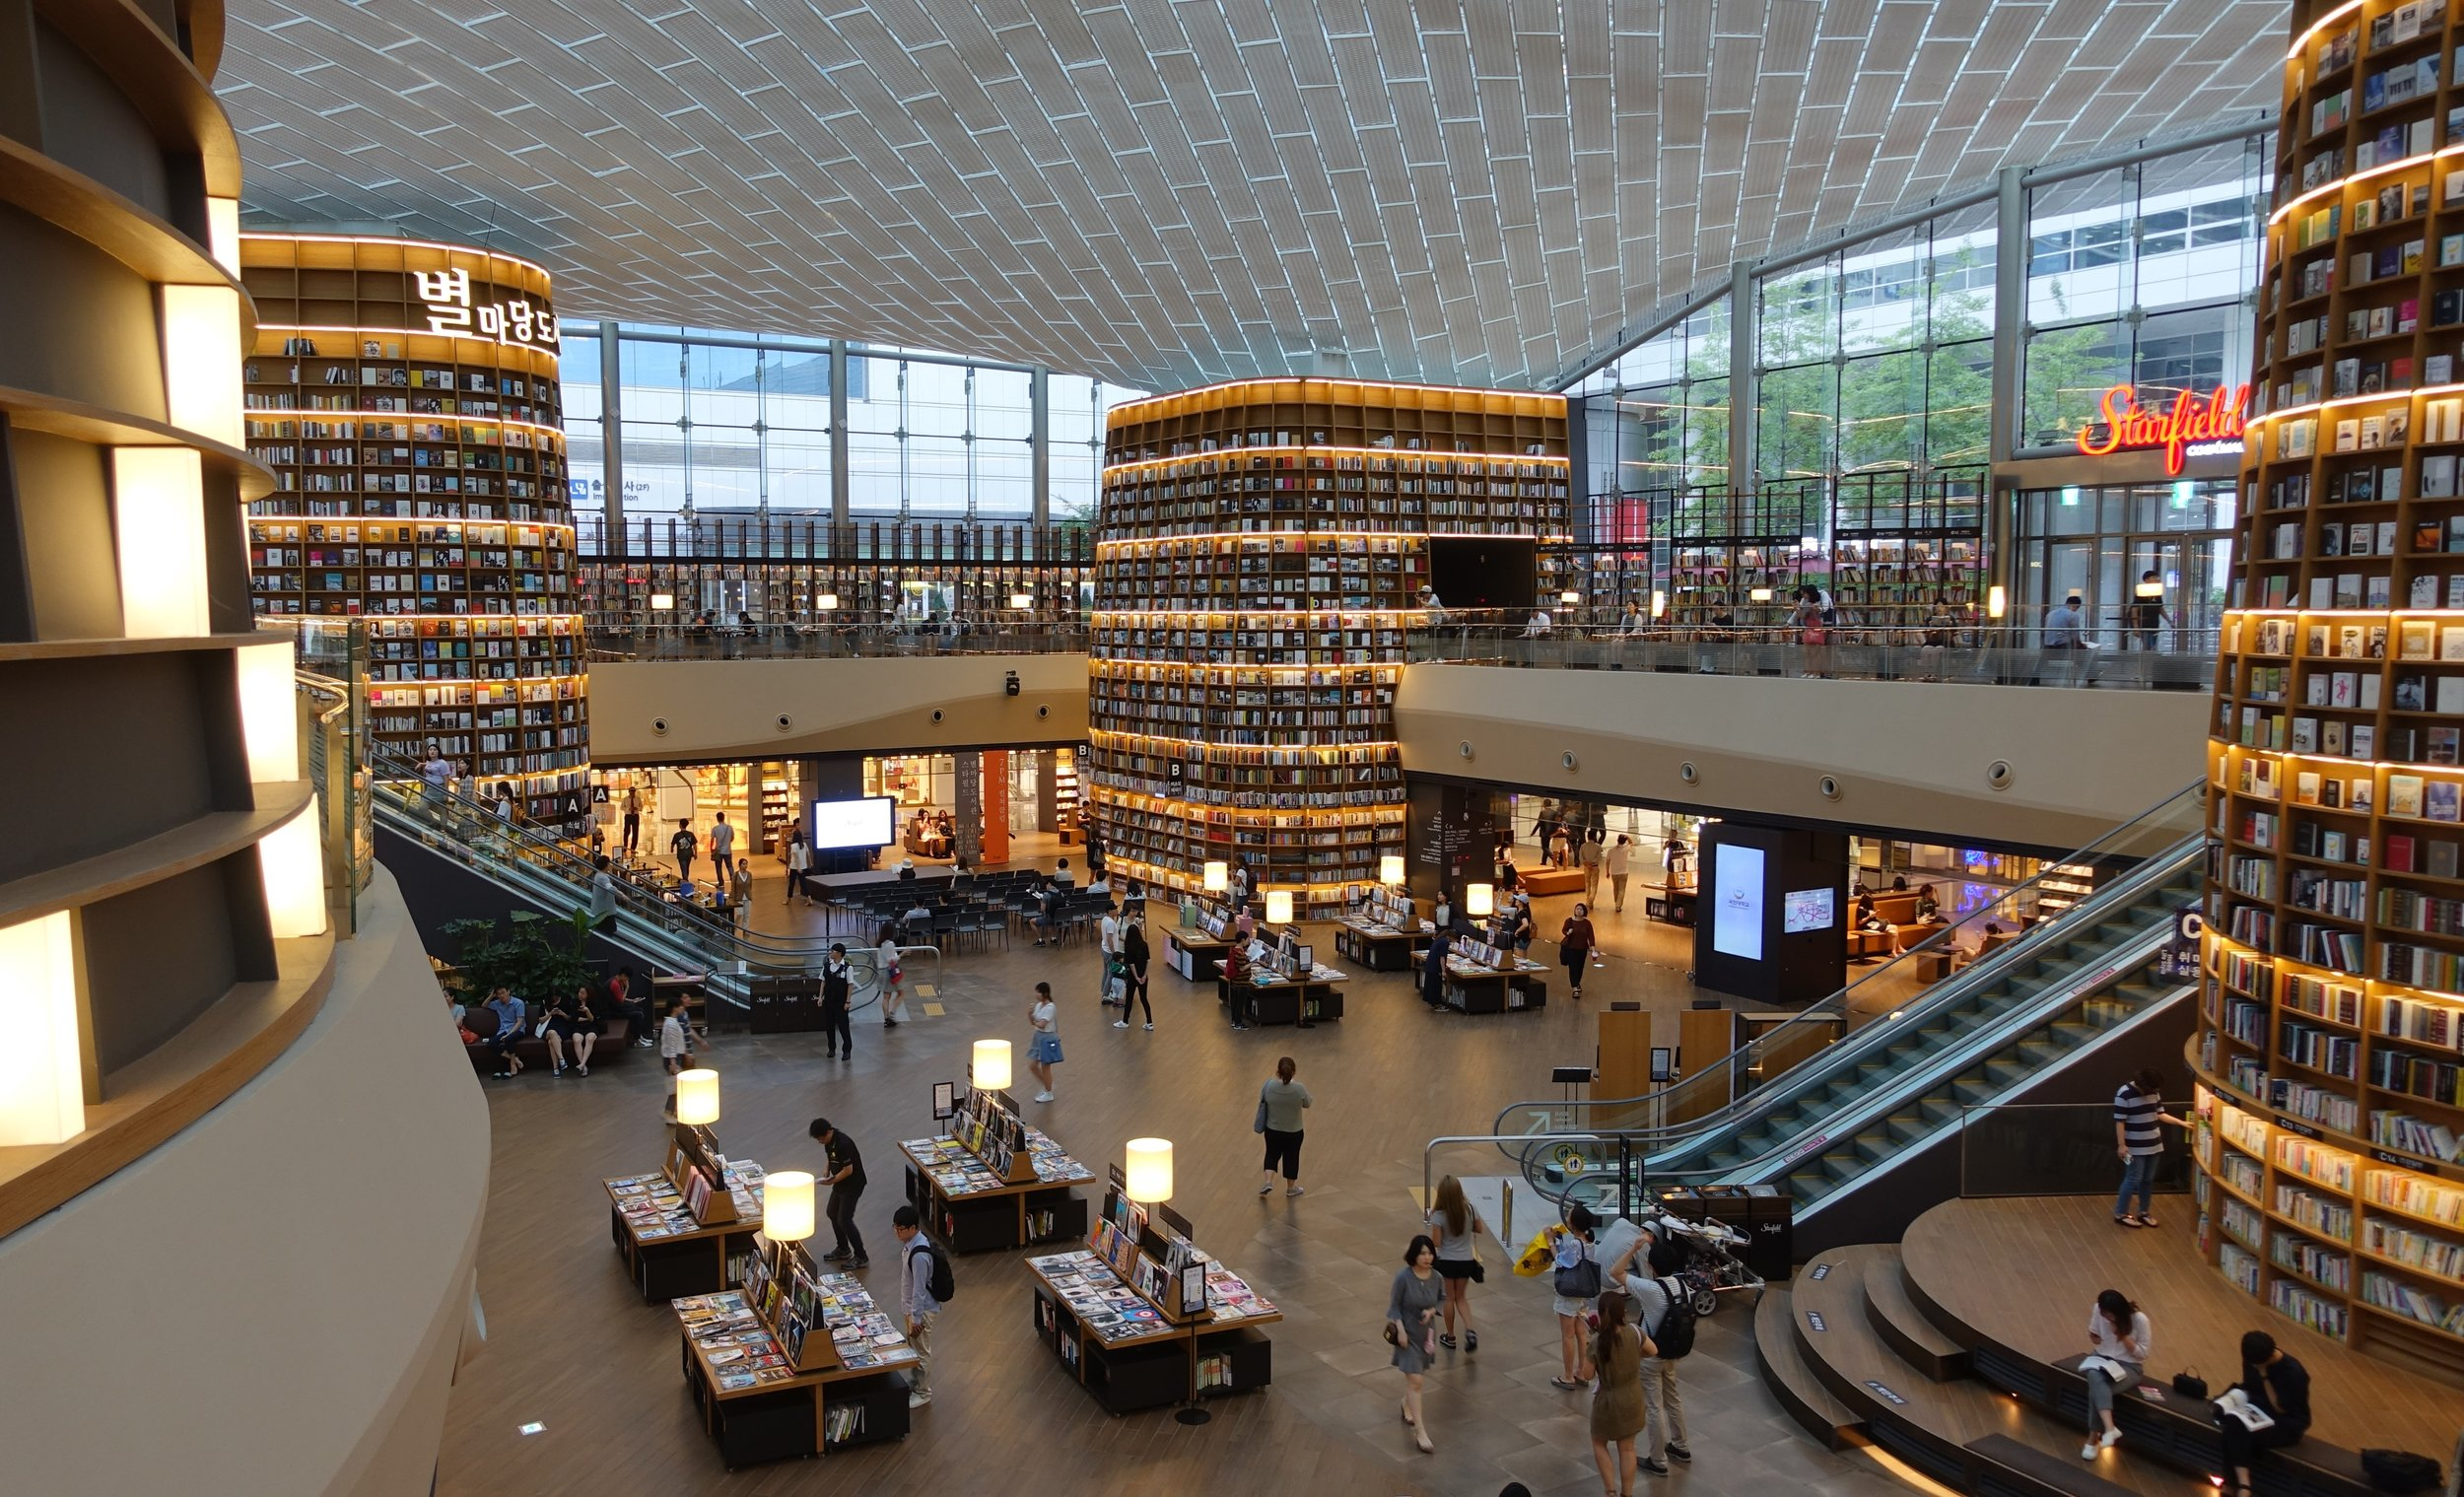 Although sited underground, Seoul's Starfield Library has a glass roof that provides light